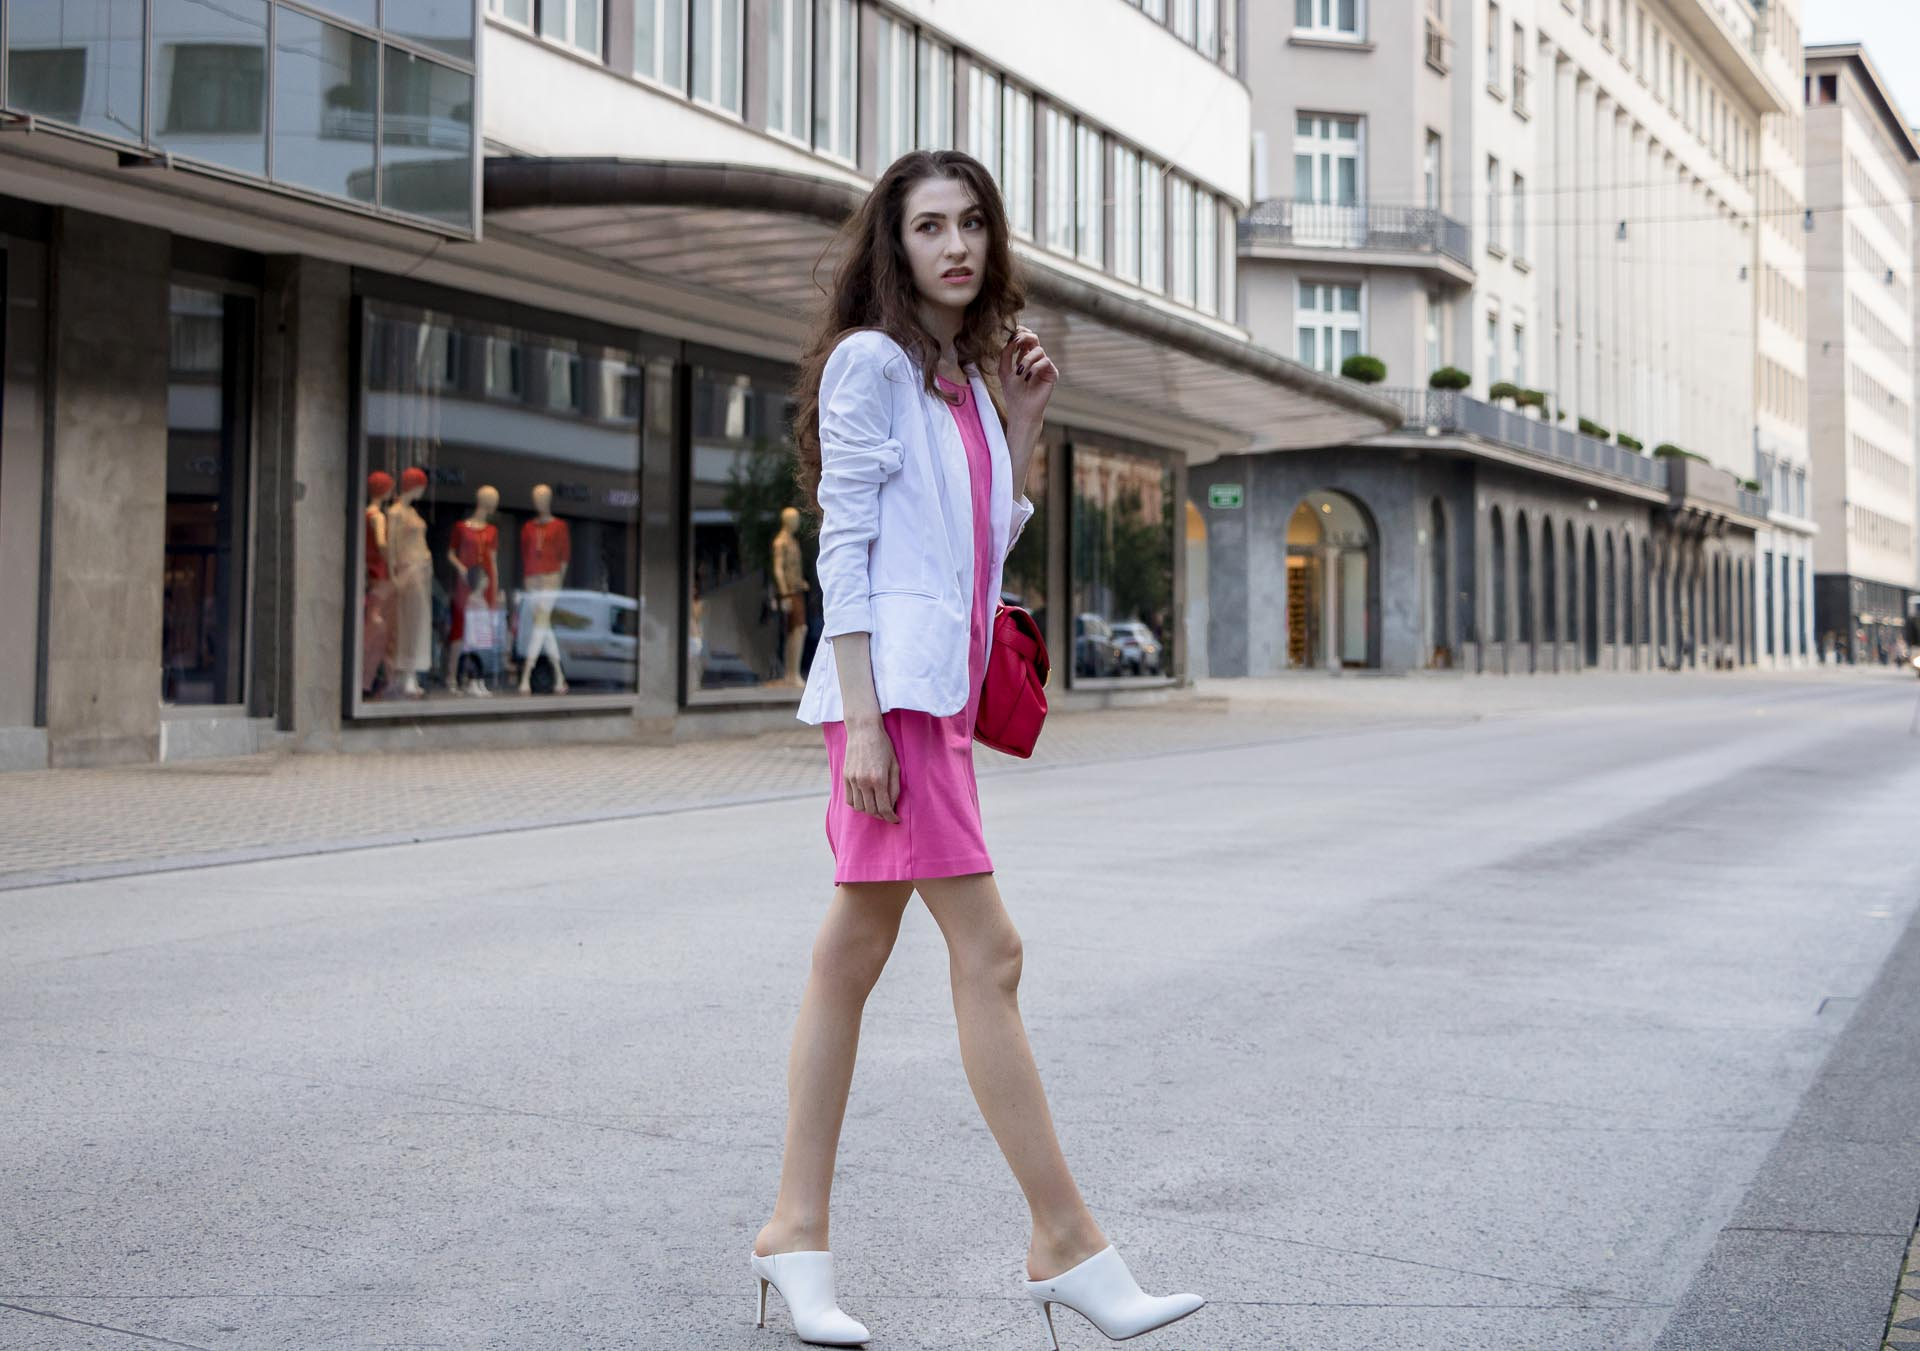 Fashion Blogger Veronika Lipar of Brunette from Wall Street wearing summer business casual outfit, white high heel close toe mules, pink tailored short dress, white blazer, pink top handle bag crossing the street in Ljubljana